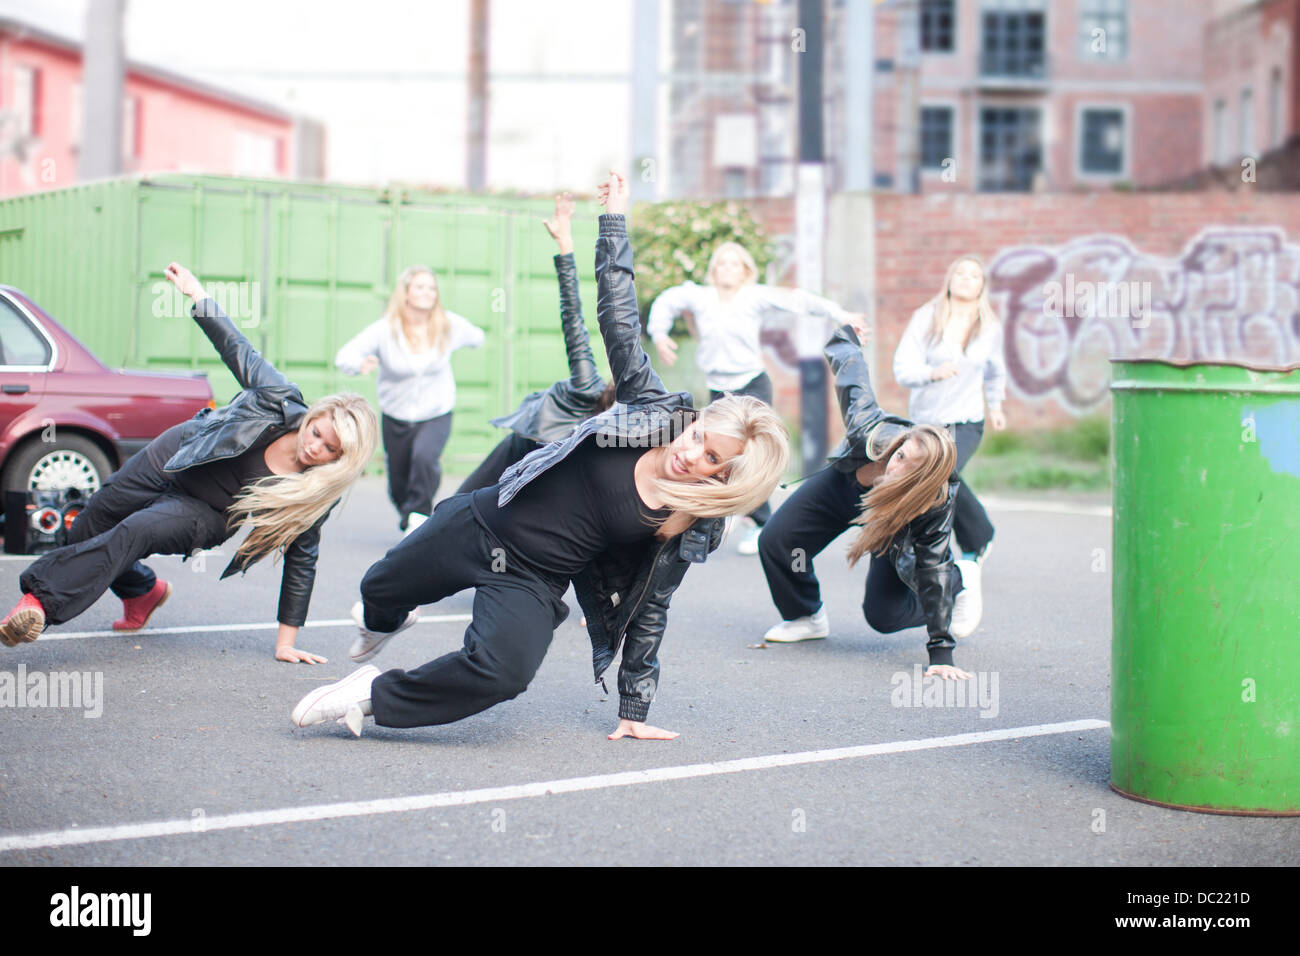 Girls practicing dance moves in carpark - Stock Image